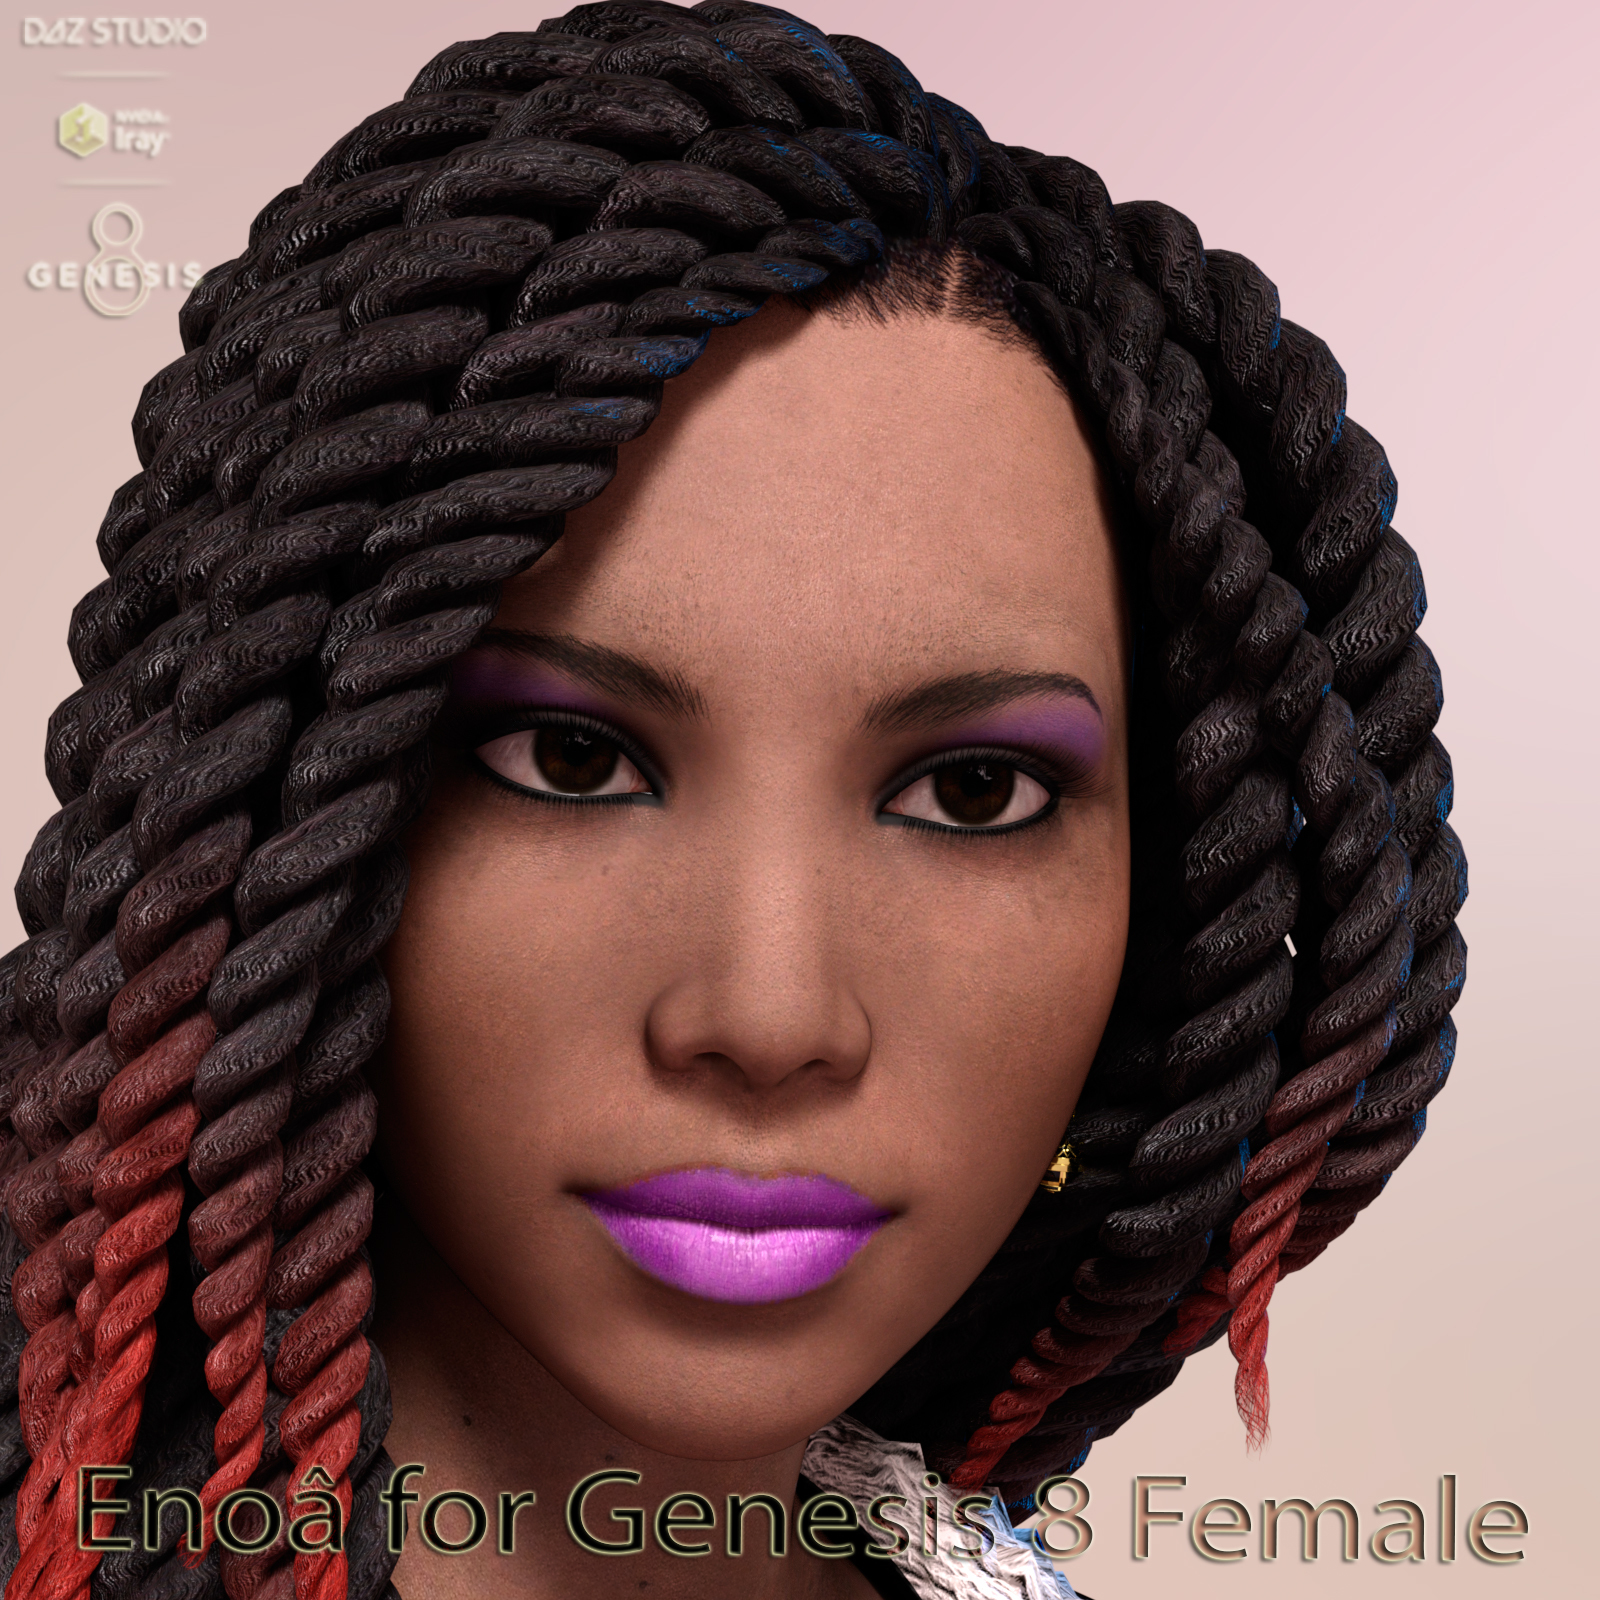 Enoa for Genesis 8 Female